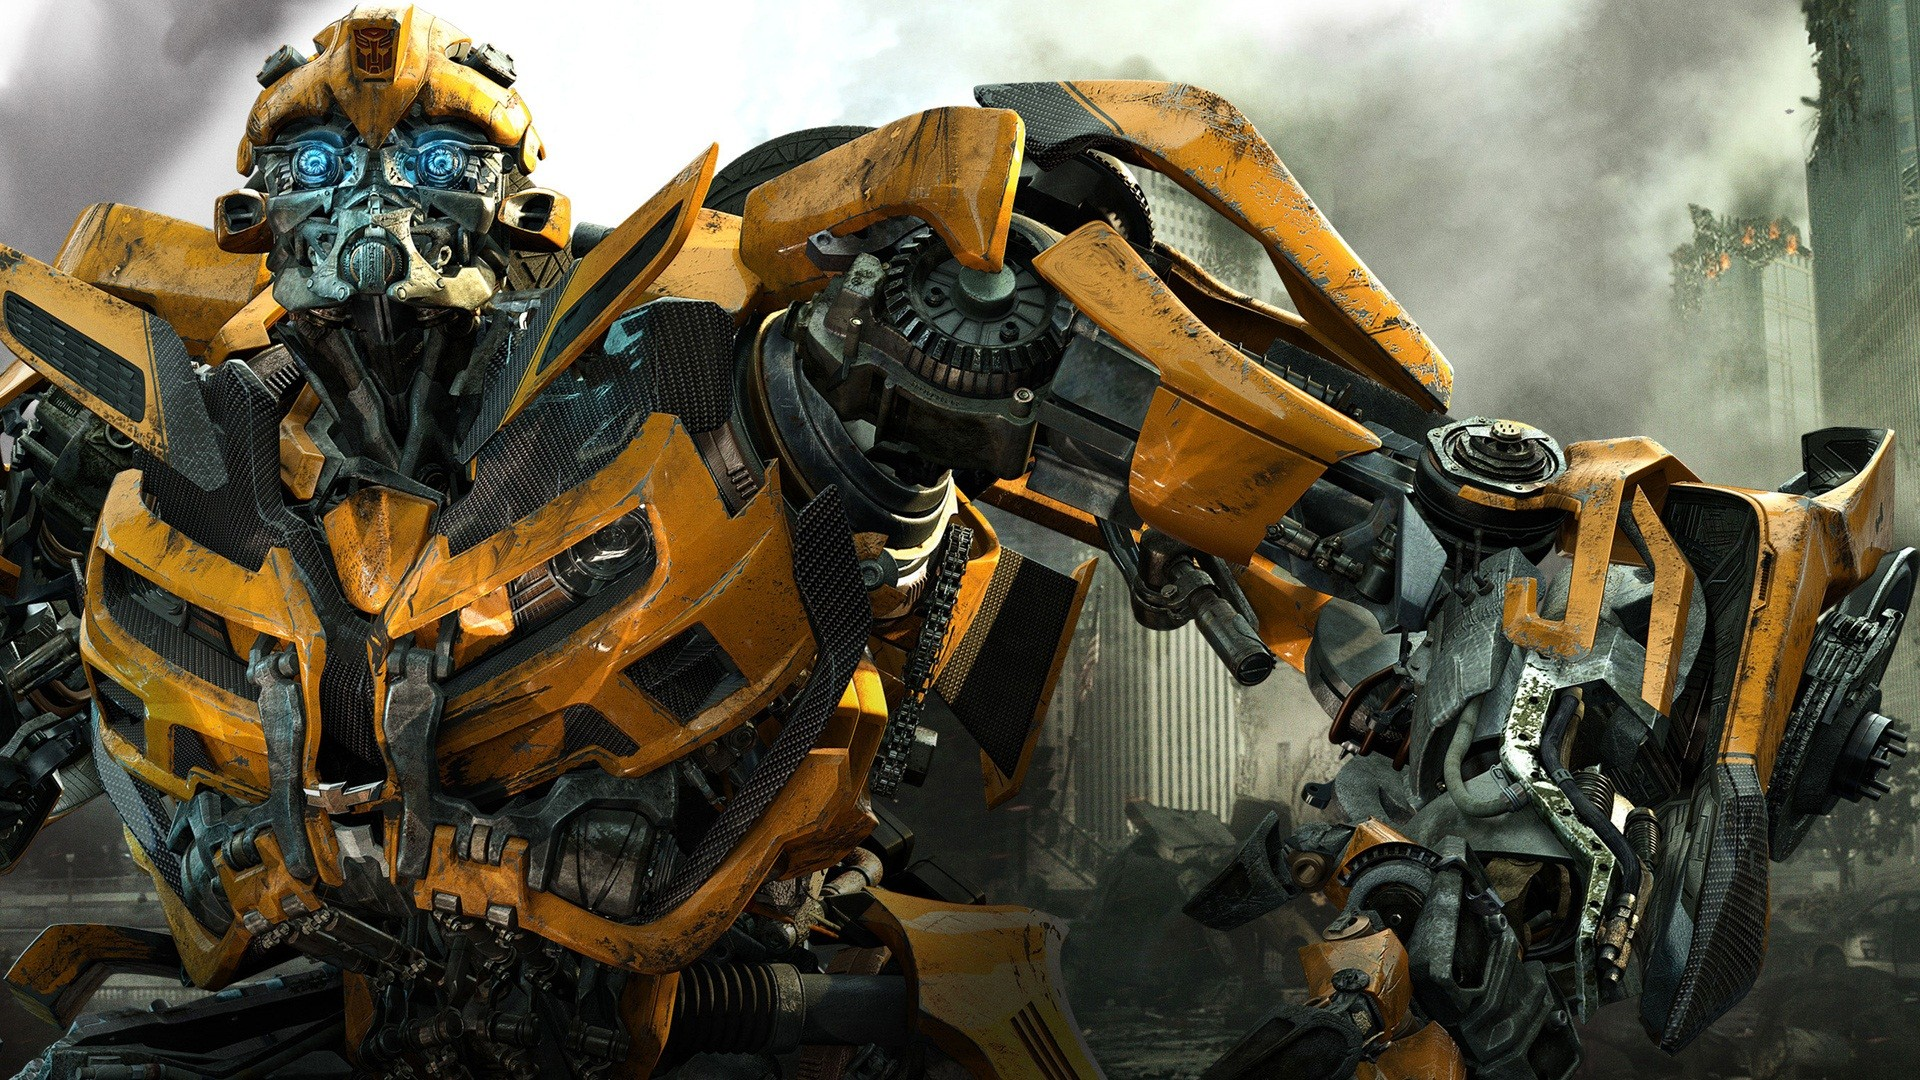 Transformers 3 Bumblebee Wallpapers HD Wallpapers ID 9585